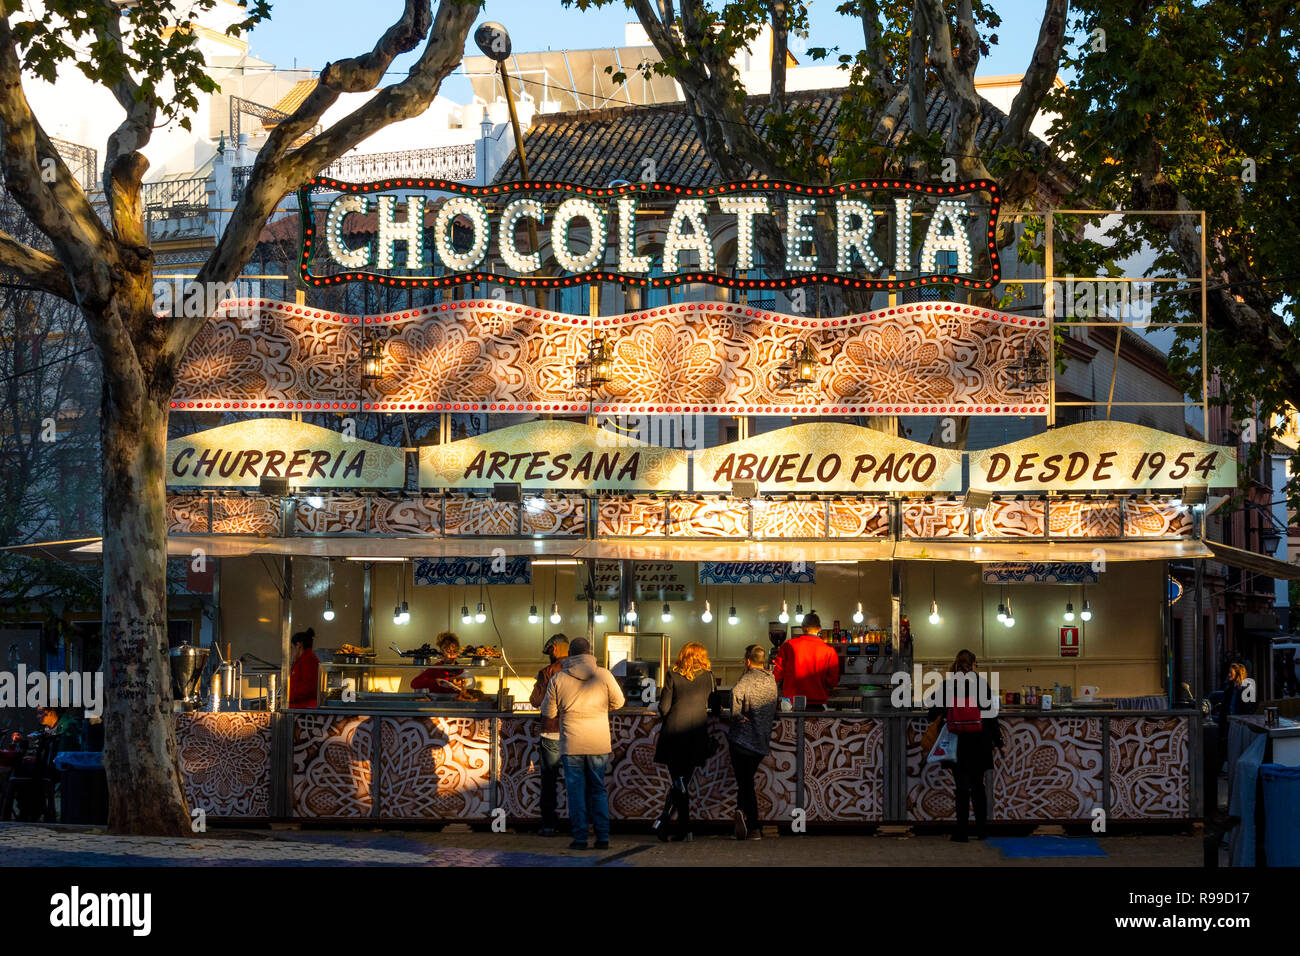 The Chocolateria food stand in the Alameda de Hercules in Seville, Spain - Stock Image